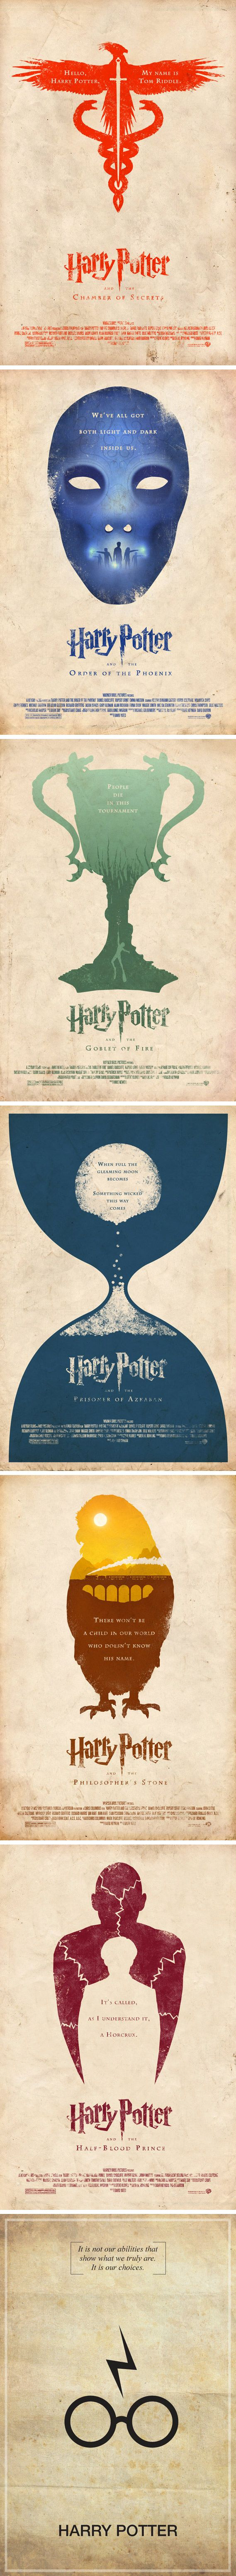 Harry Potter graphic posters